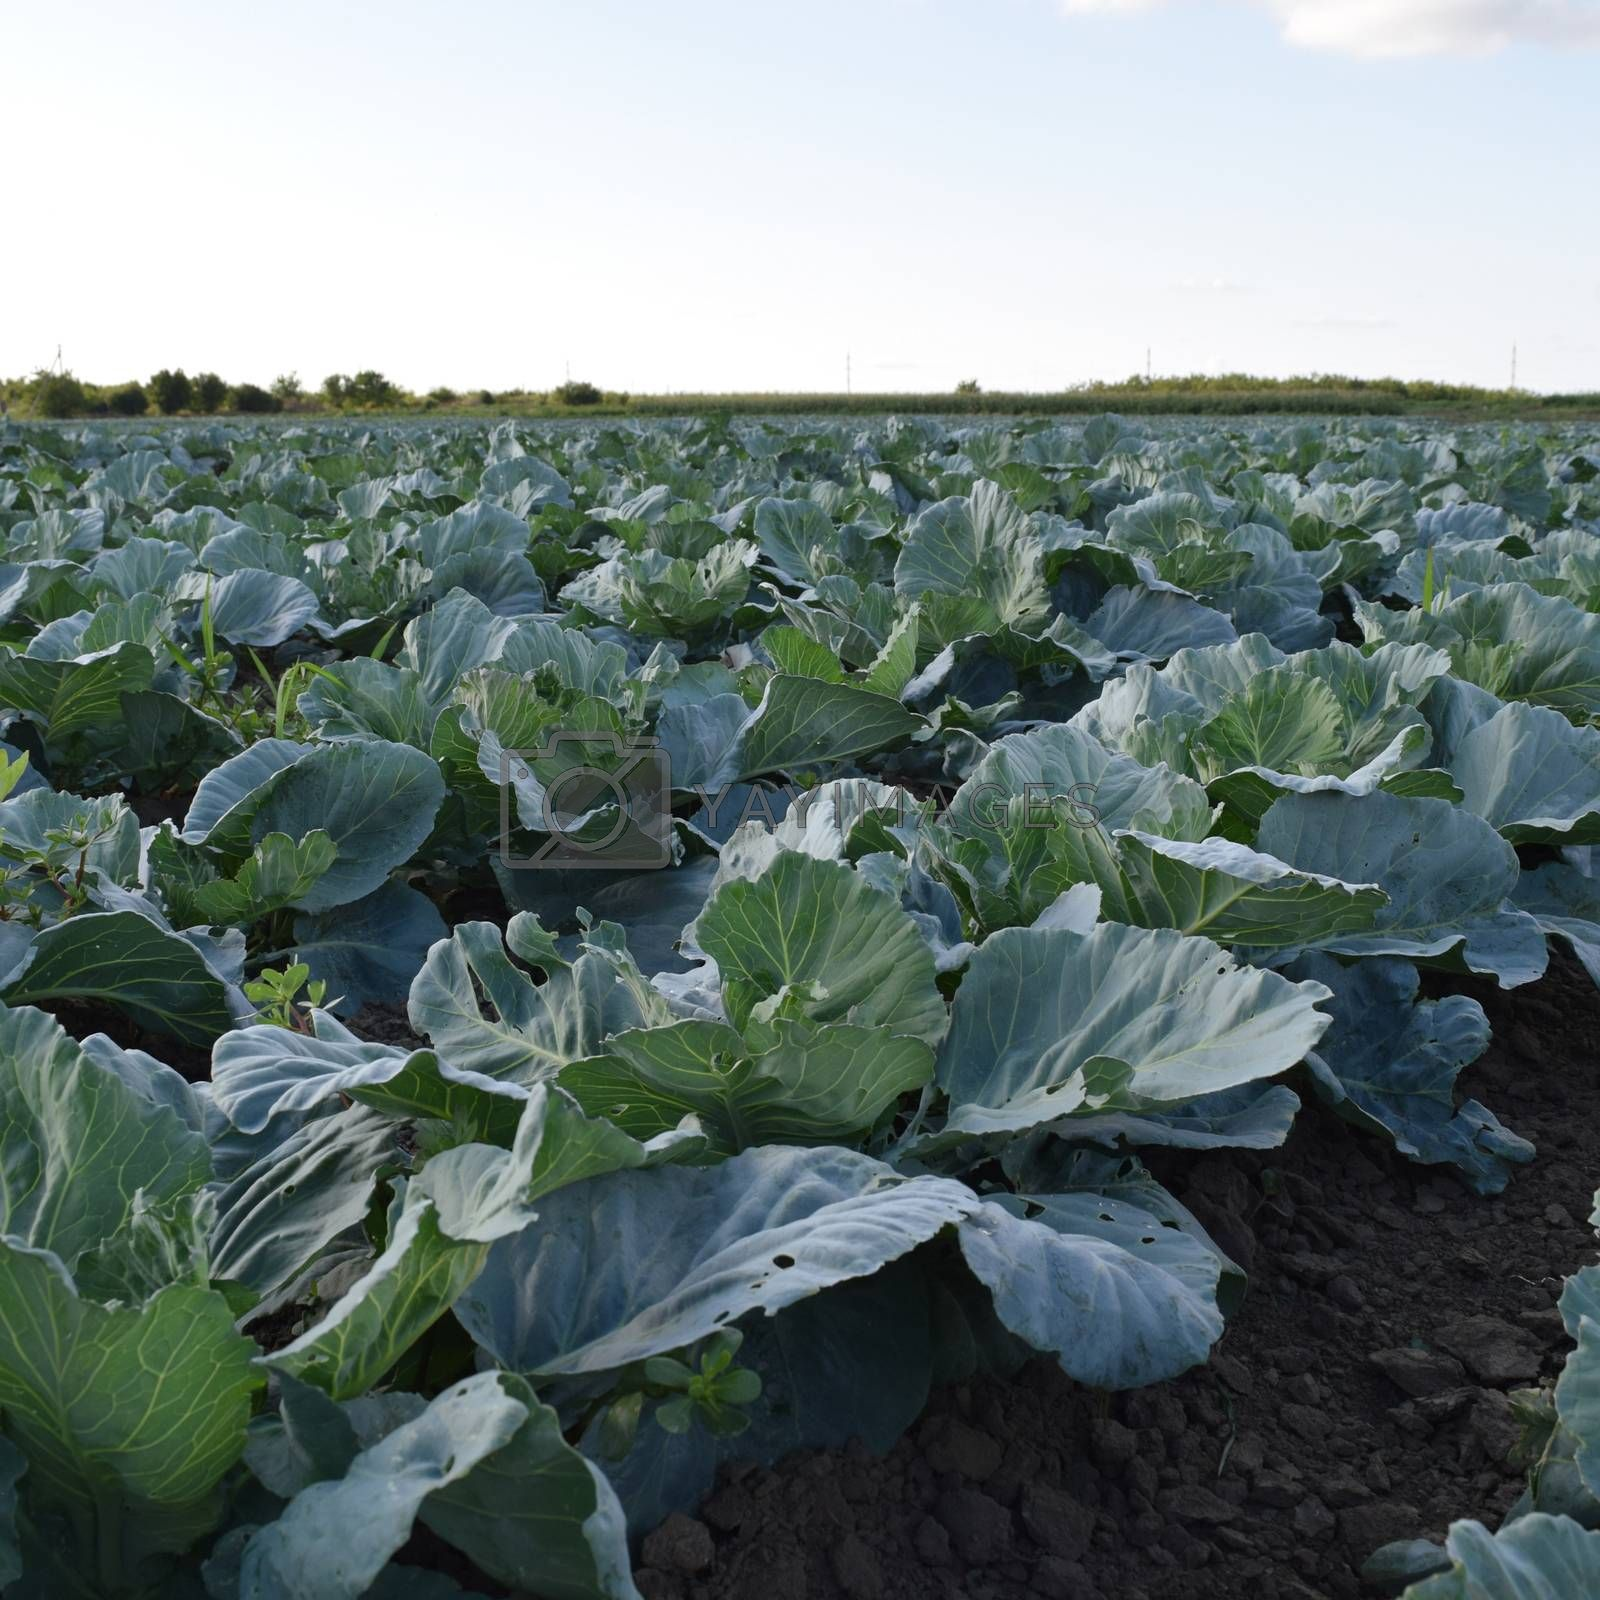 Cabbage field. Cultivation of cabbage in an open ground in the field. Month July, cabbage still the young.